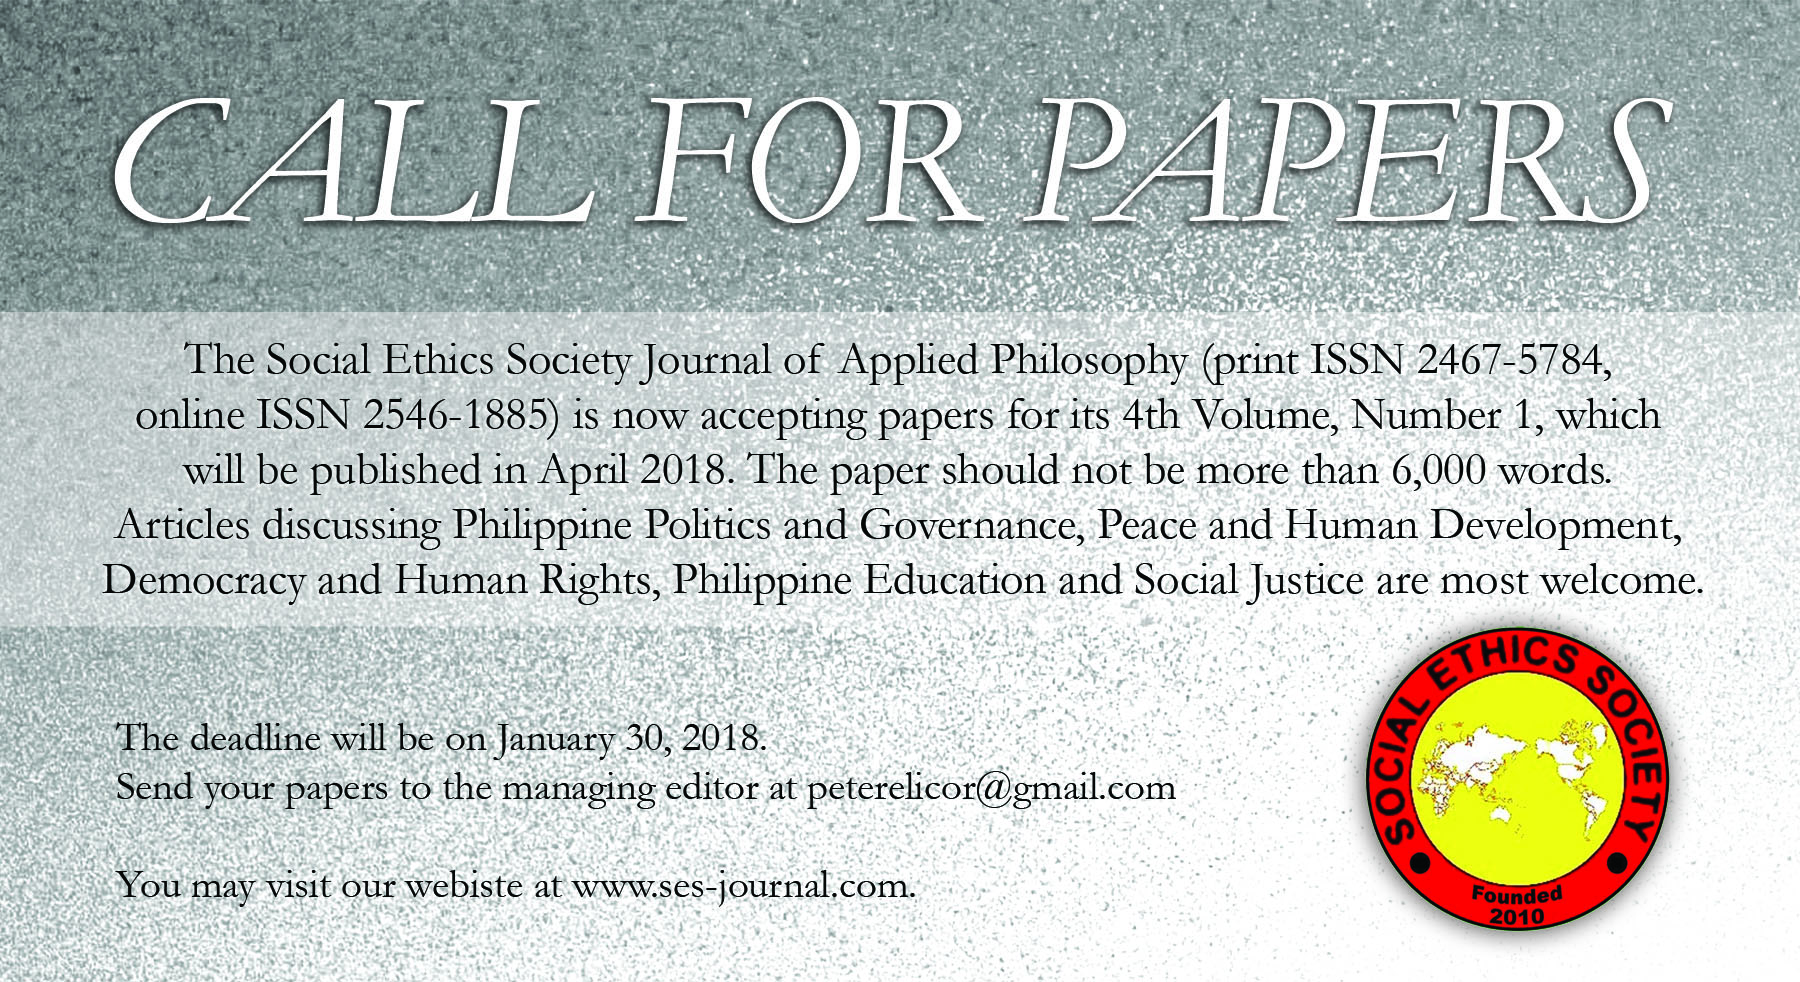 social ethics society journal of applied philosophy